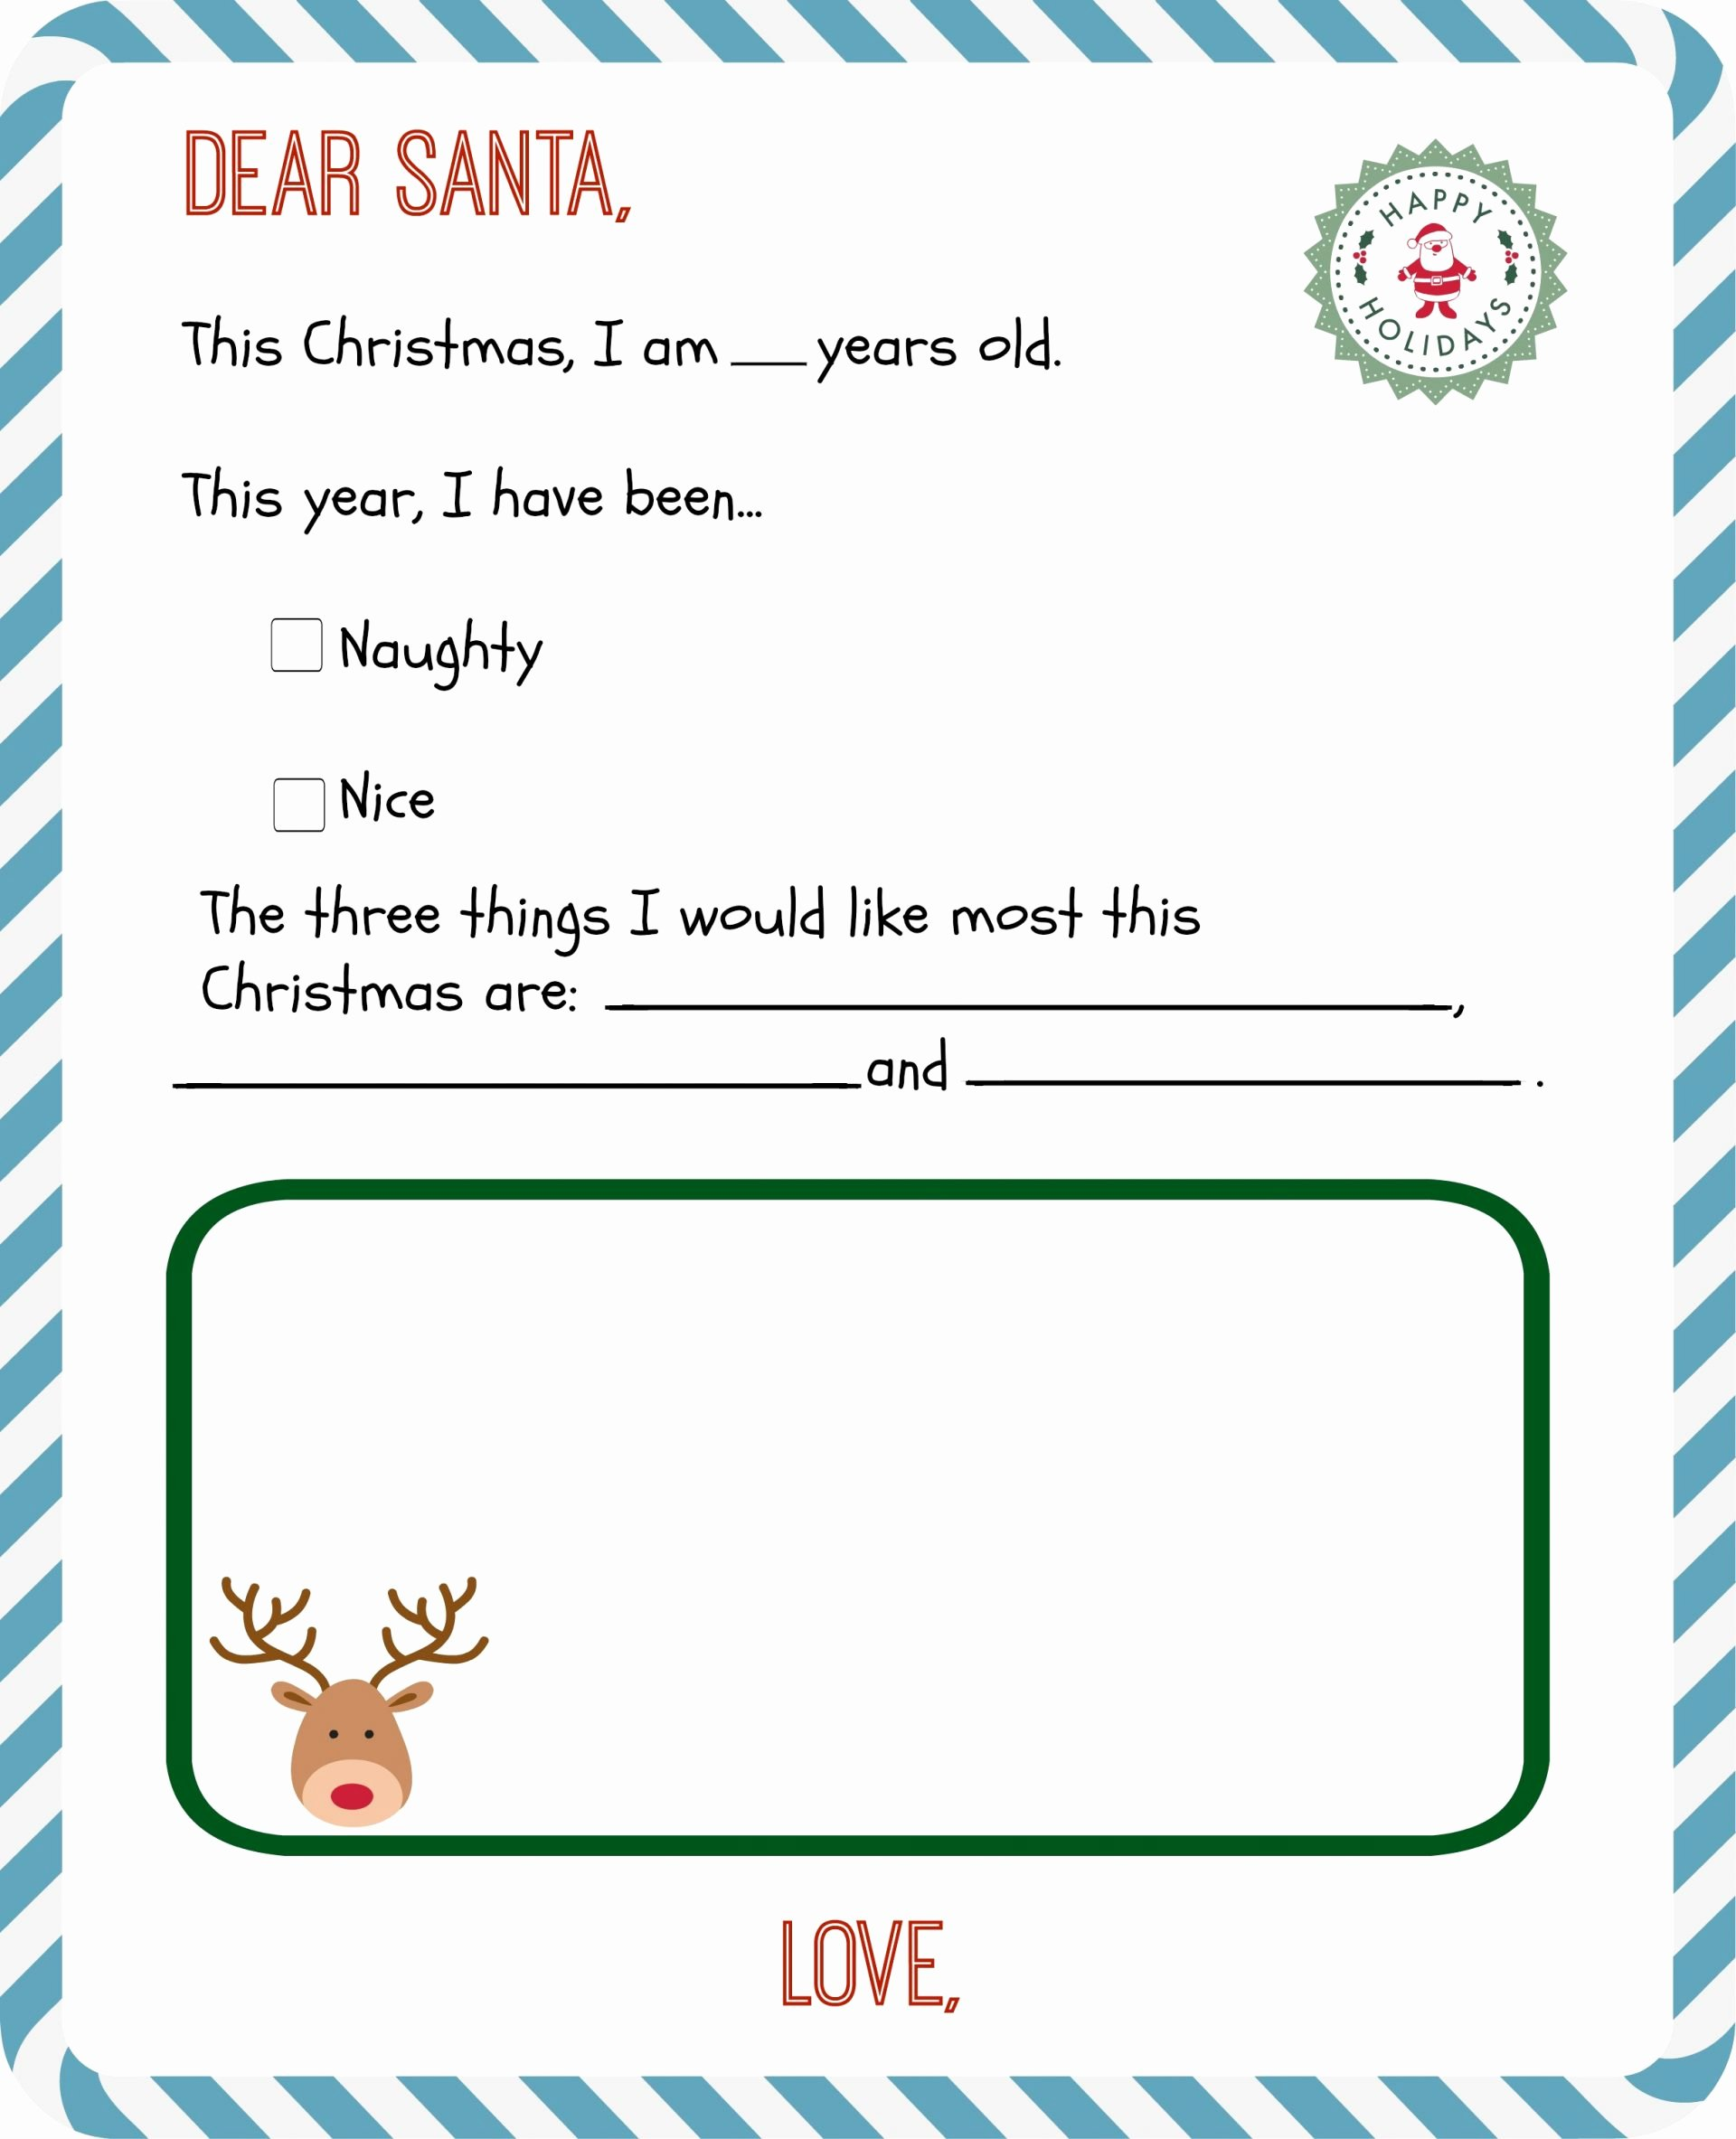 Free Santa Letter Template Best Of Free Printable Letter to Santa Templates and How to Get A